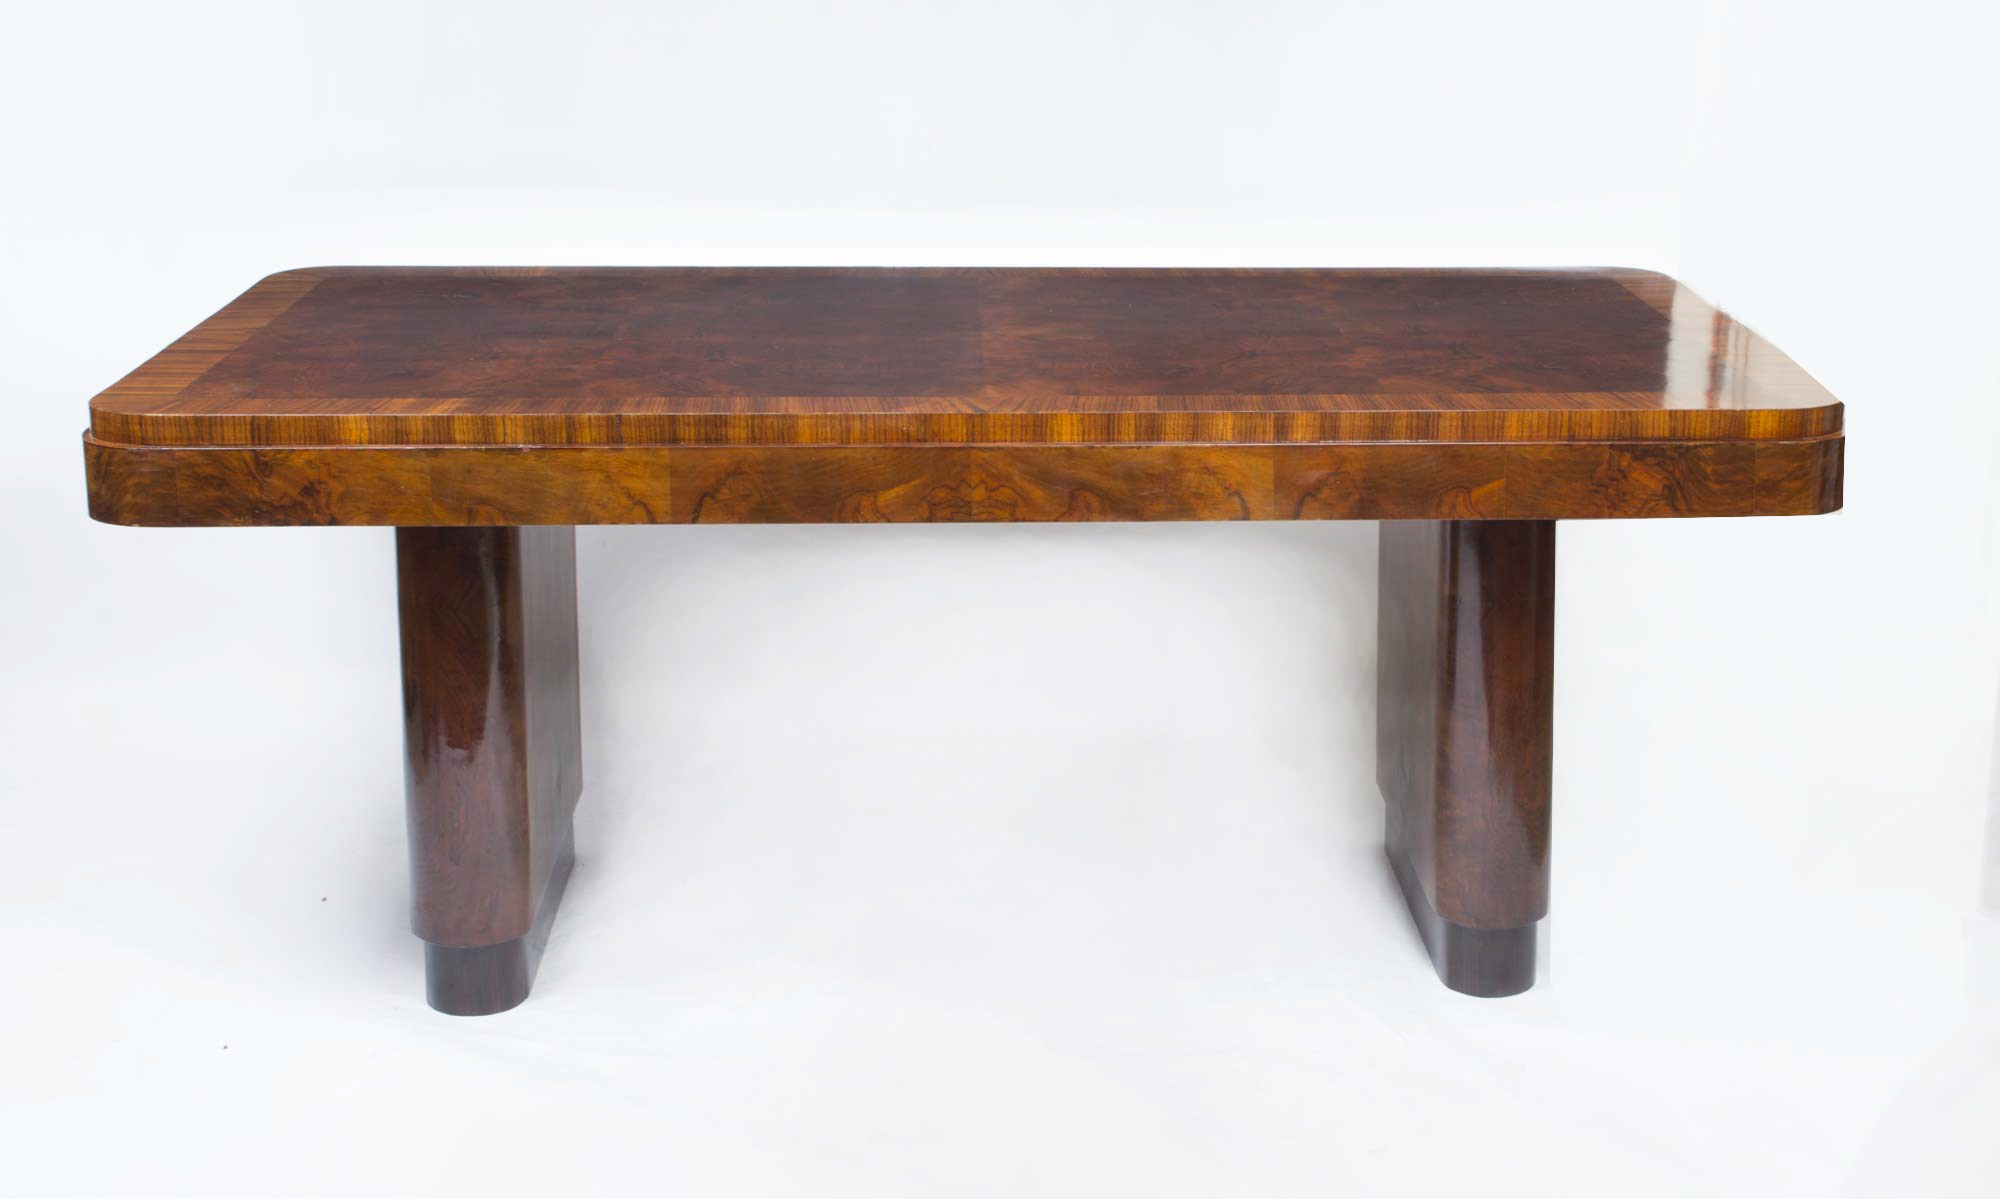 antique art deco walnut rosewood dining table c1920 ref no 06769. Black Bedroom Furniture Sets. Home Design Ideas